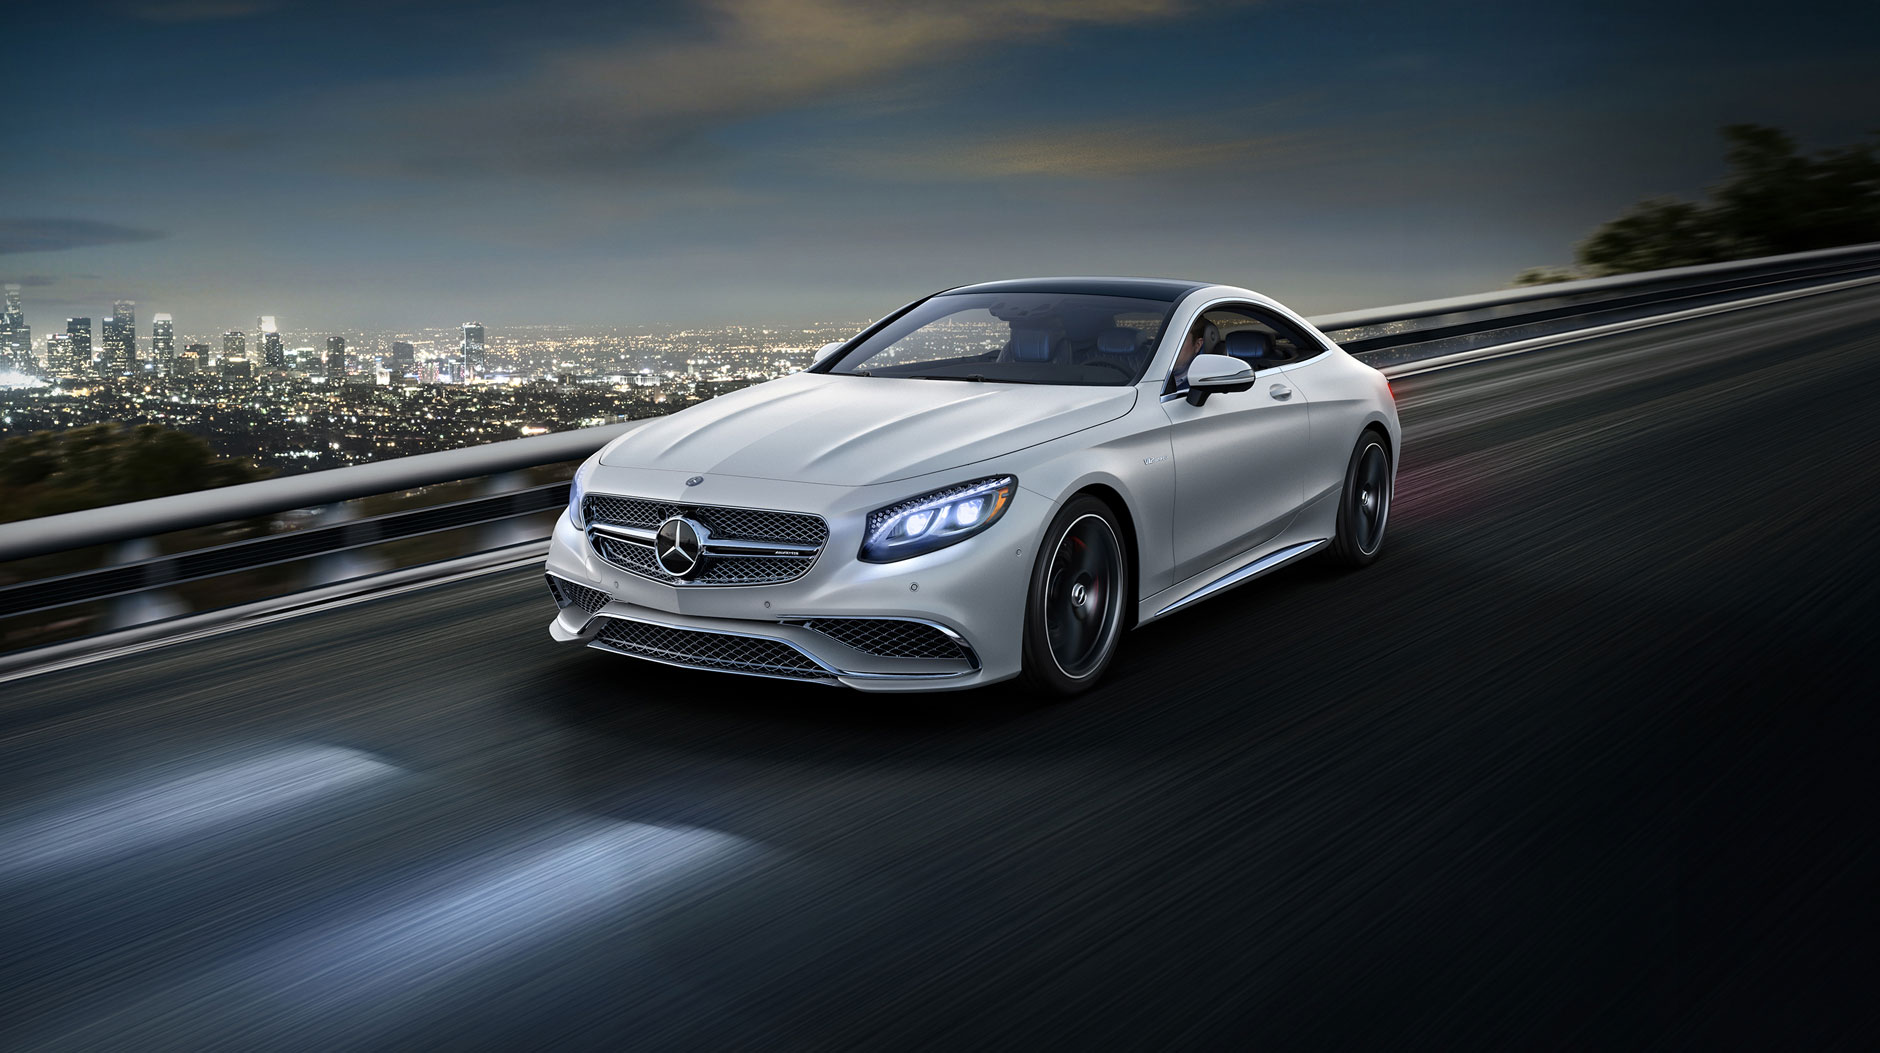 the inspected when img being excess lease fast mercedes in avoid to returning vehicle fees turn a at benz how